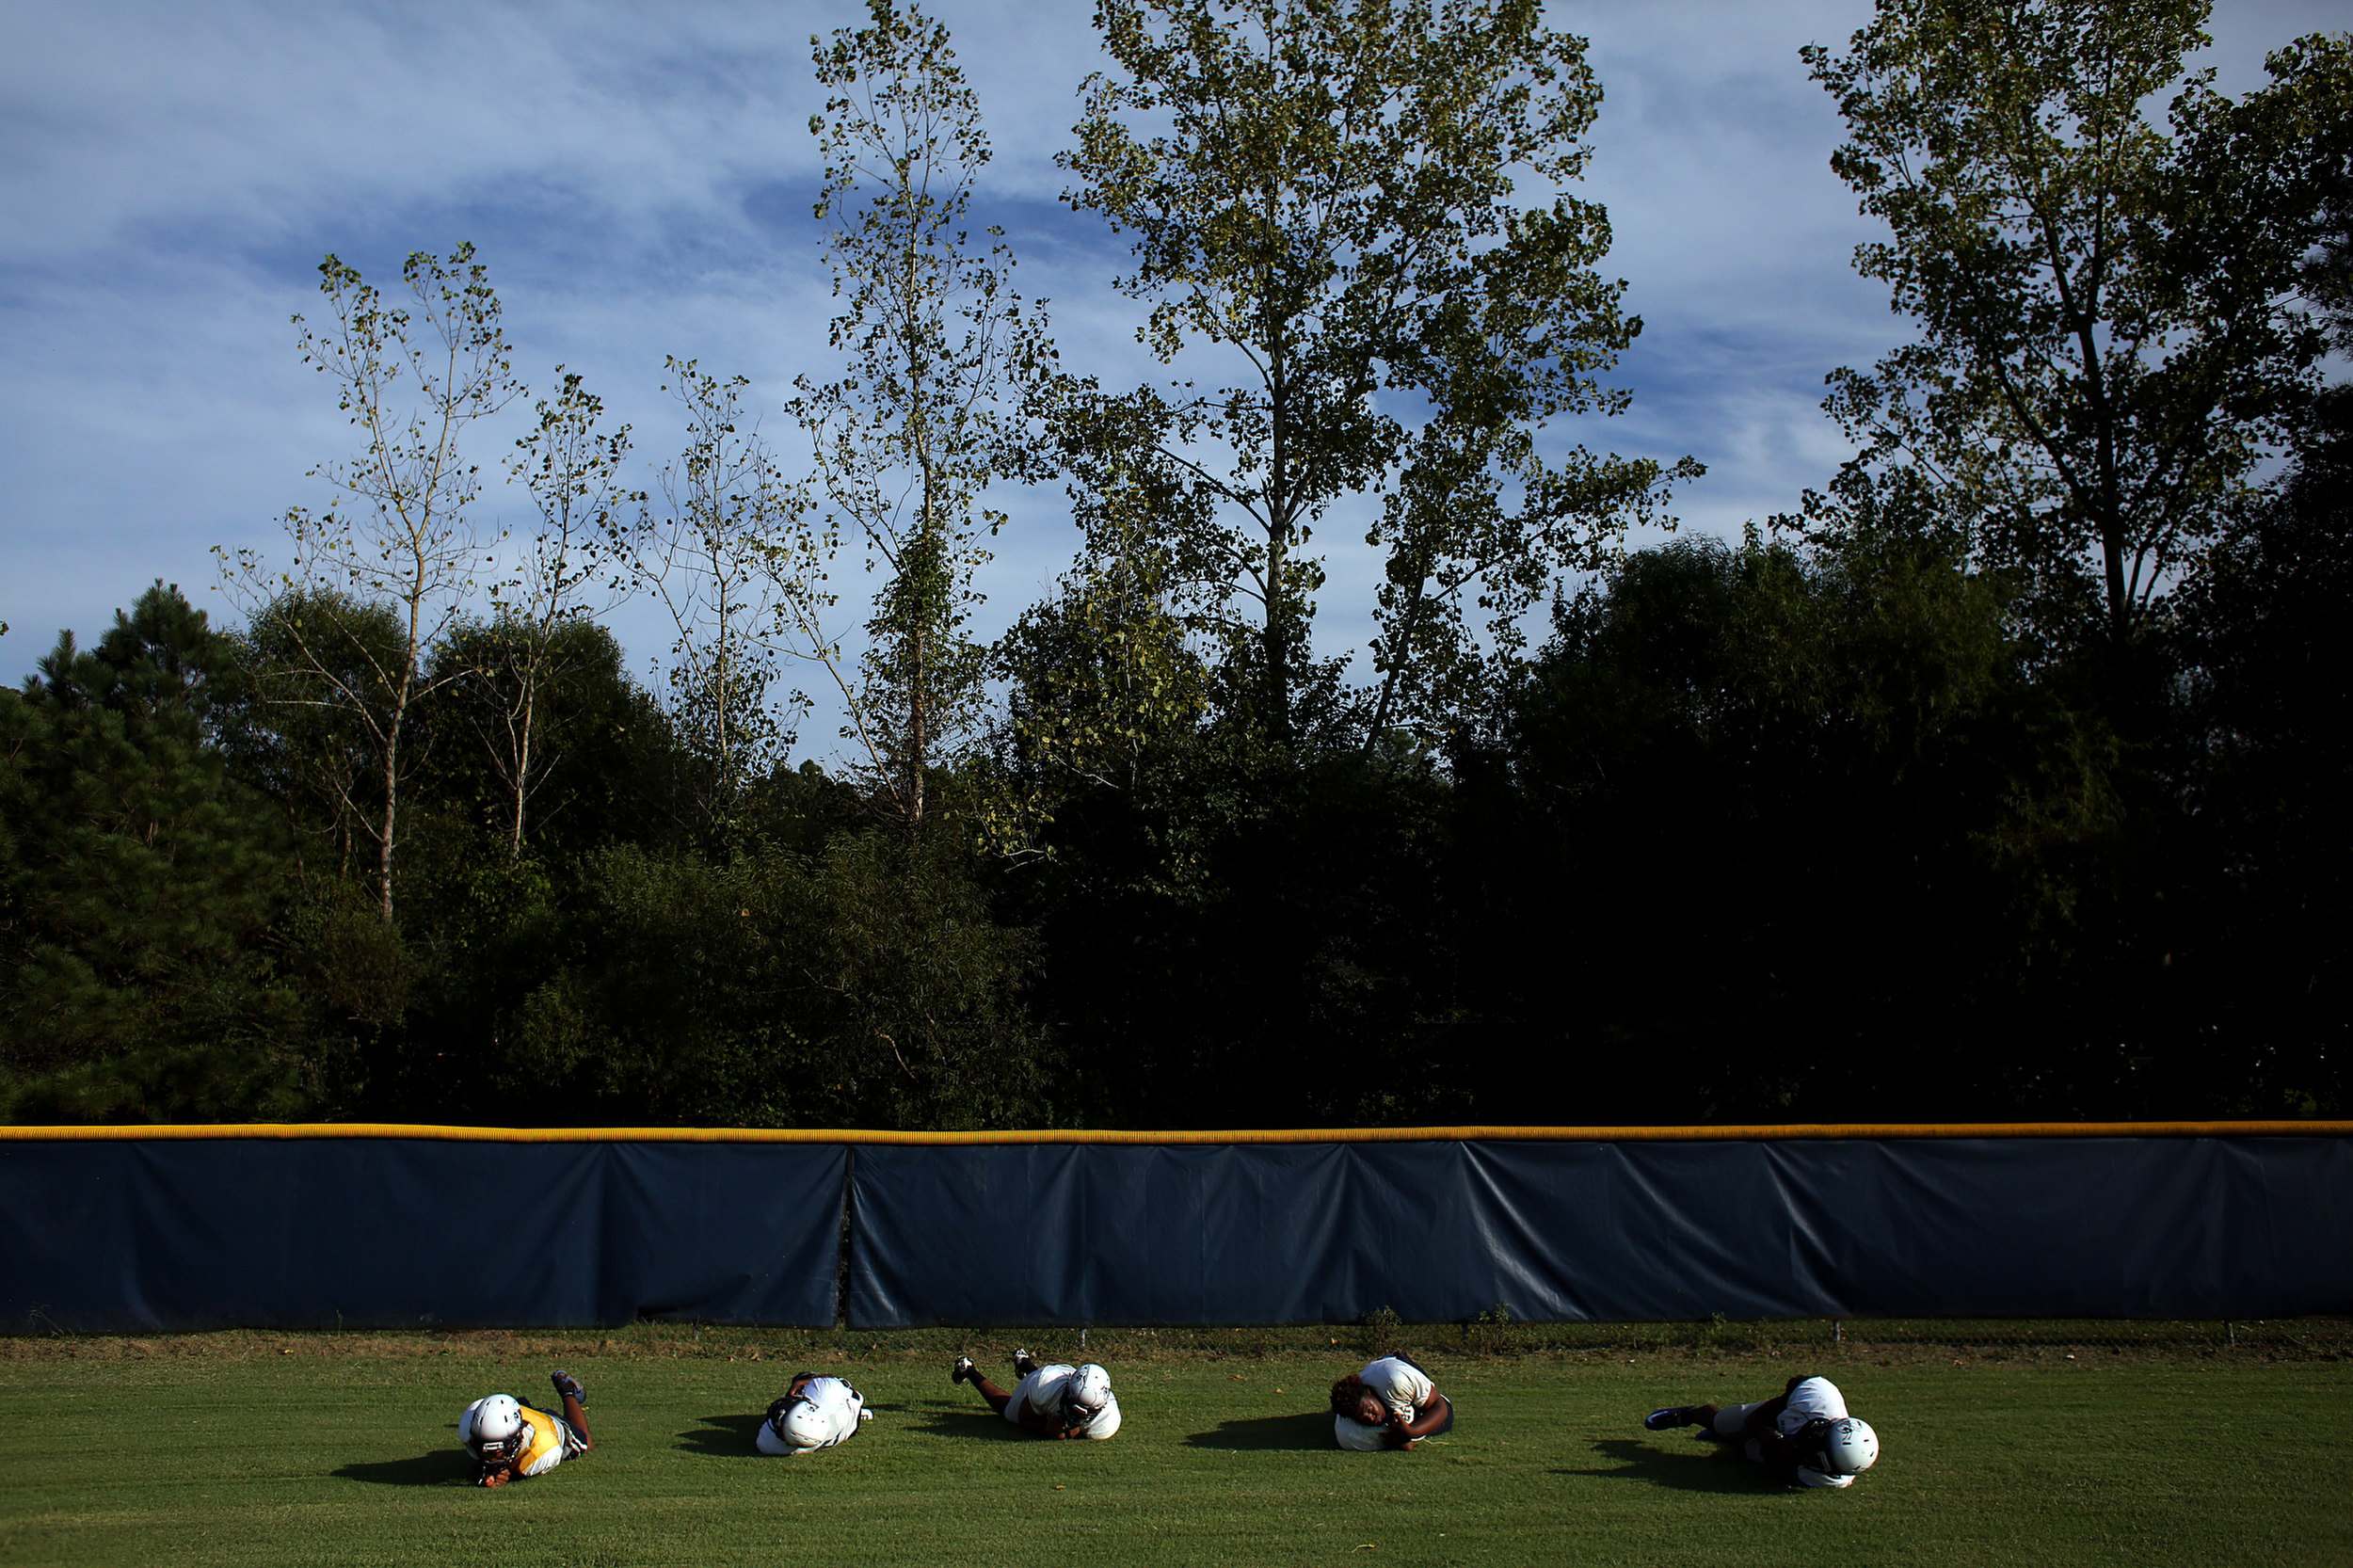 Hillside players roll across a baseball outfield as part of punishment for being late to practice, Sept. 14, 2016, at Hillside High School.